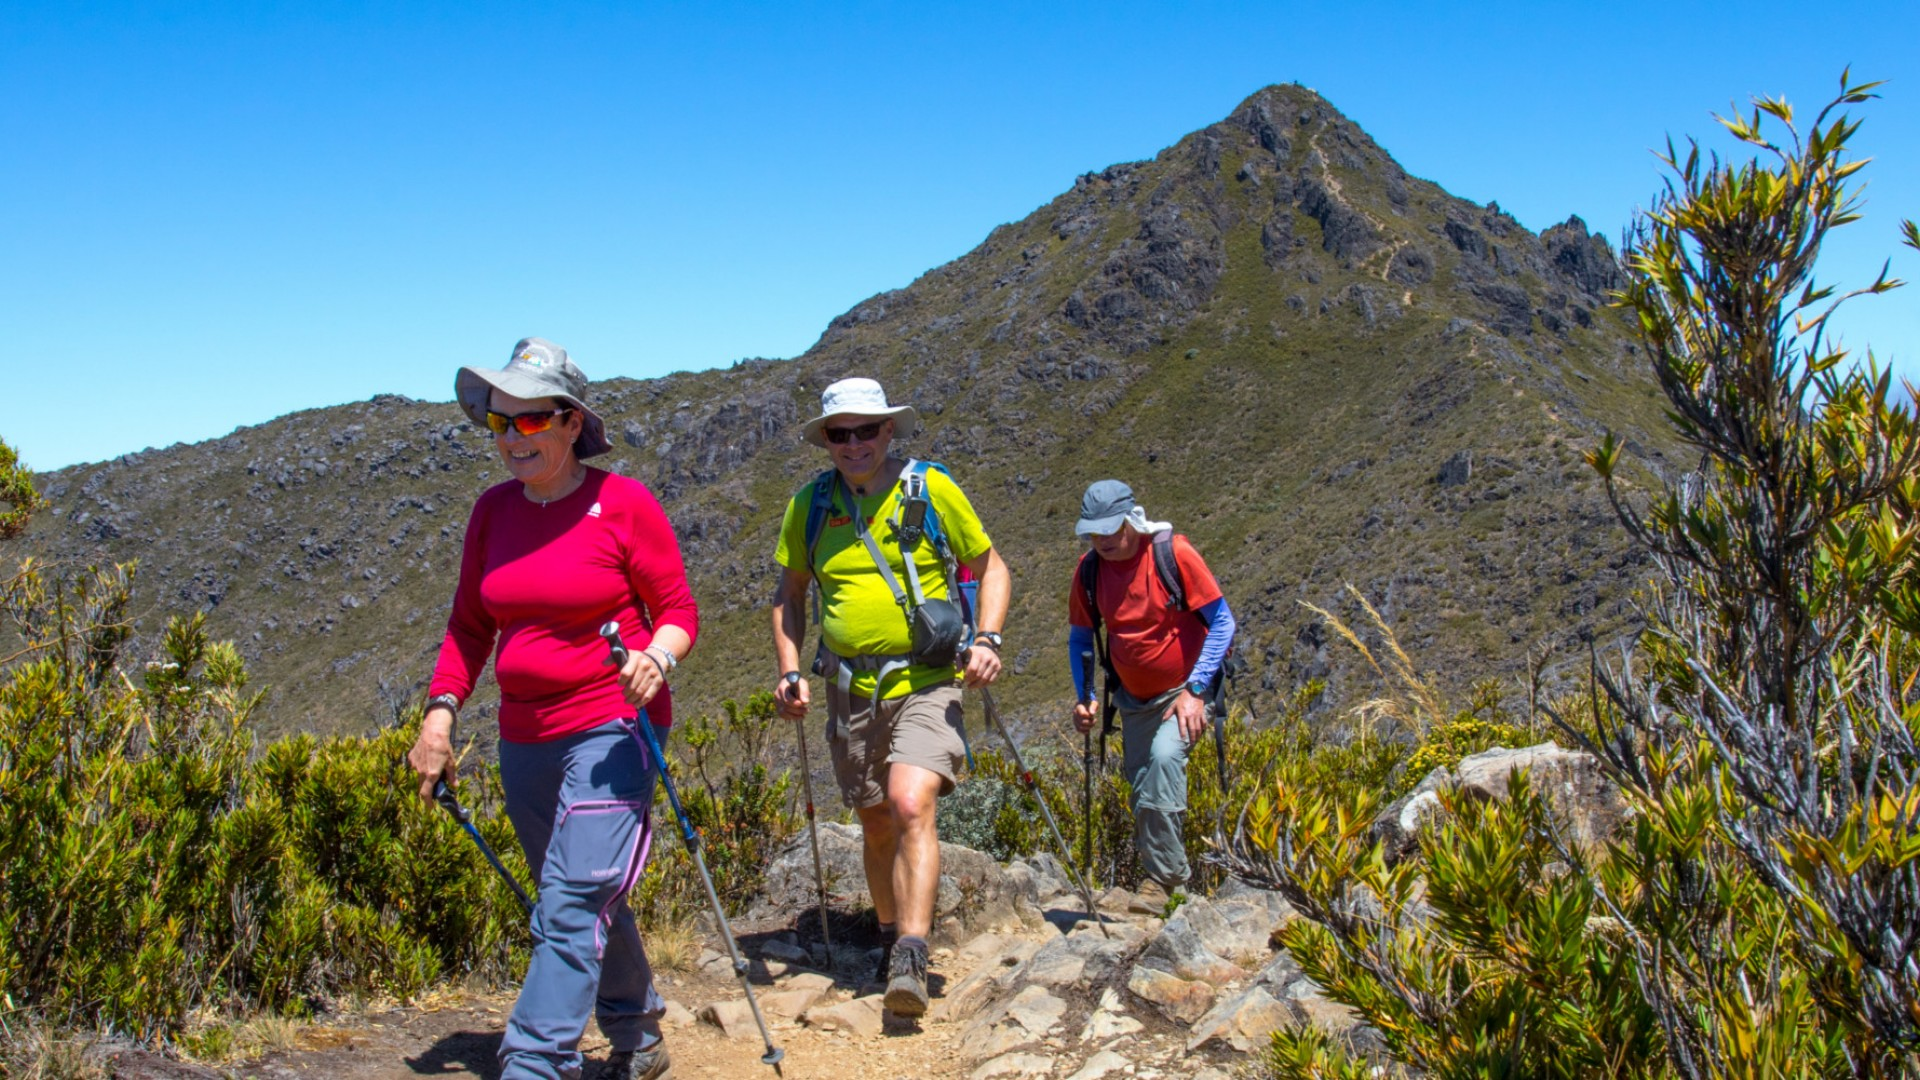 Hikers in Chirripó National Park